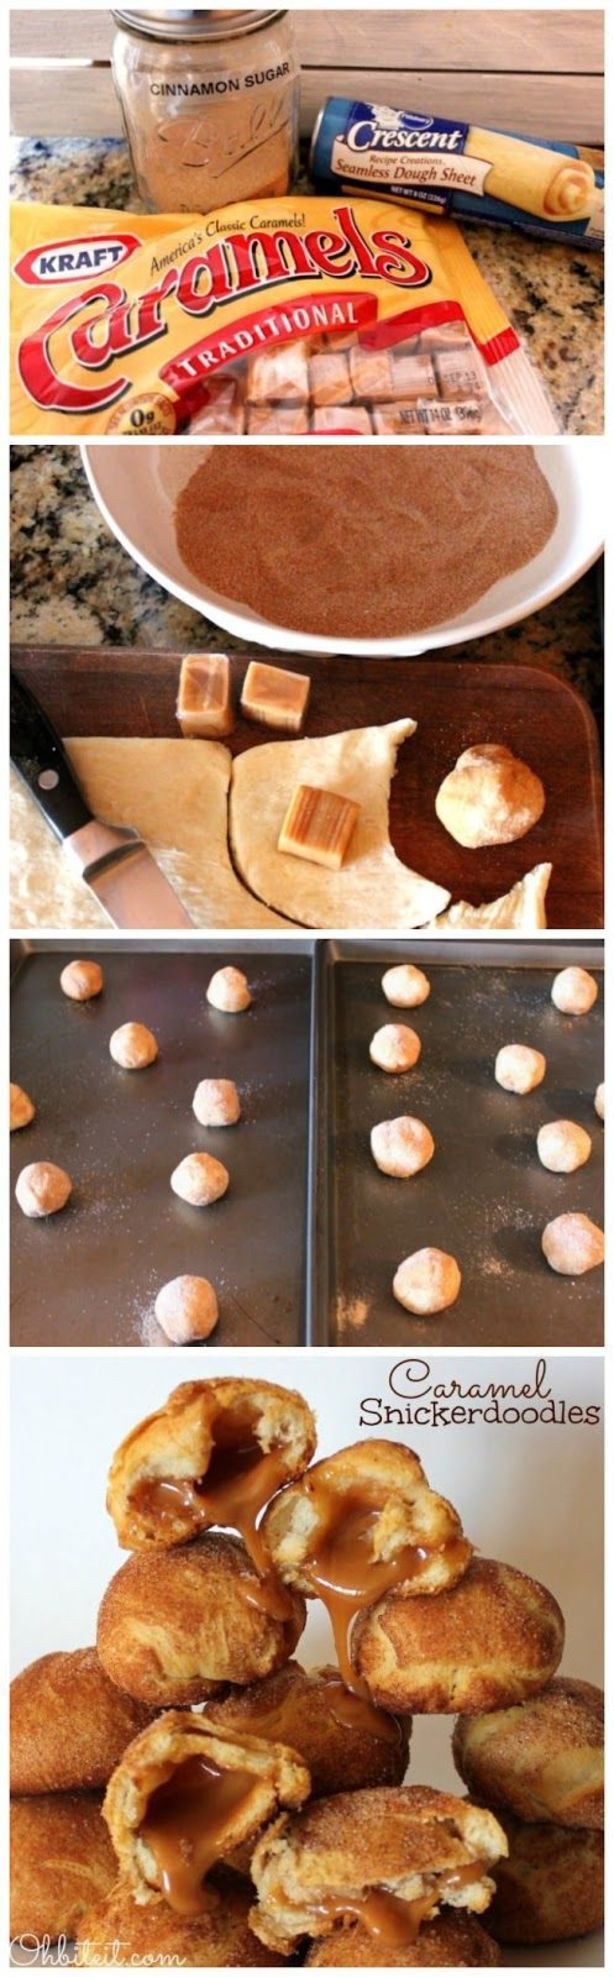 1 Pillsbury Crescents Seamless Dough Sheet Caramel Candies..one per each Doodle. 1 cup of Cinnamon/Sugar..blended to your taste Cut out about a 2″x2″ piece of dough and wrap it gently and snuggled around one Caramel.  Roll it in the Cinnamon Sugar…Place them onto a baking sheet about 1″ or so apart…Bake them at 350 degrees for about 12 minutes, or until they're firm and slightly puffy.